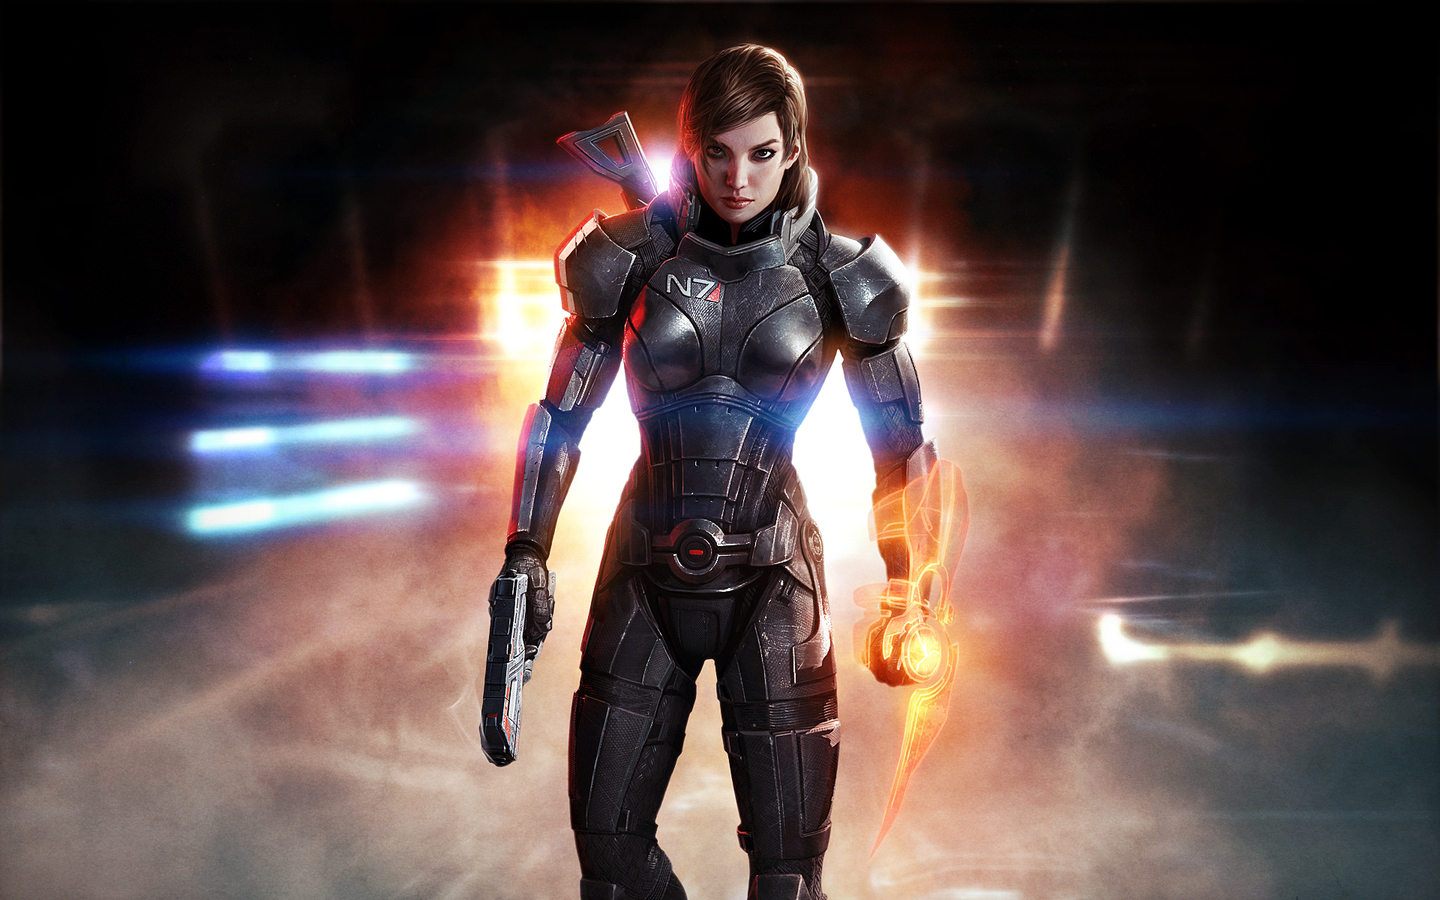 1440x900 Mass Effect 3 Shepard Femshep Hd 1440x900 Resolution Hd